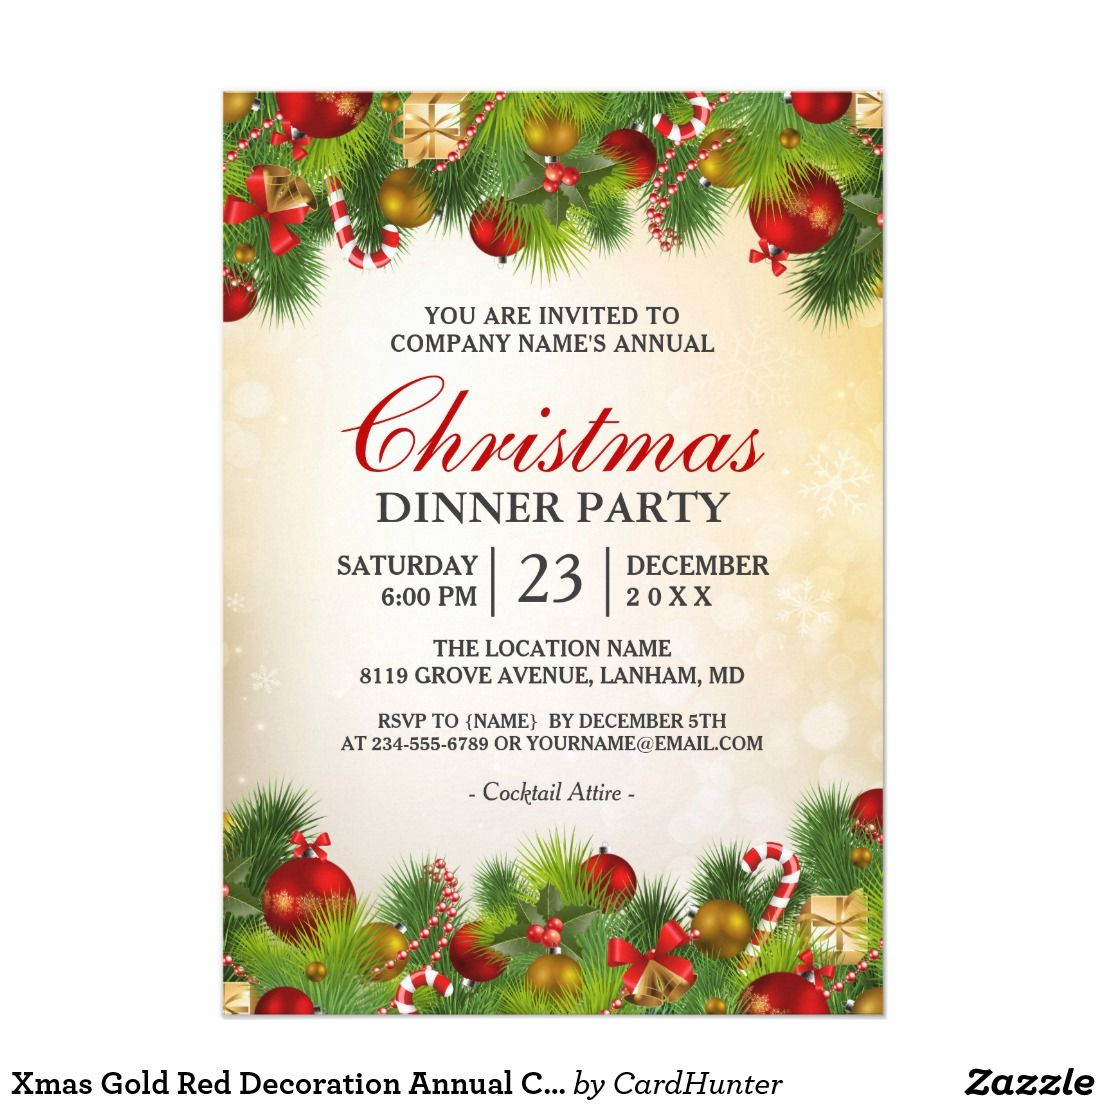 xmas gold red decoration annual christmas party invitation in 2018